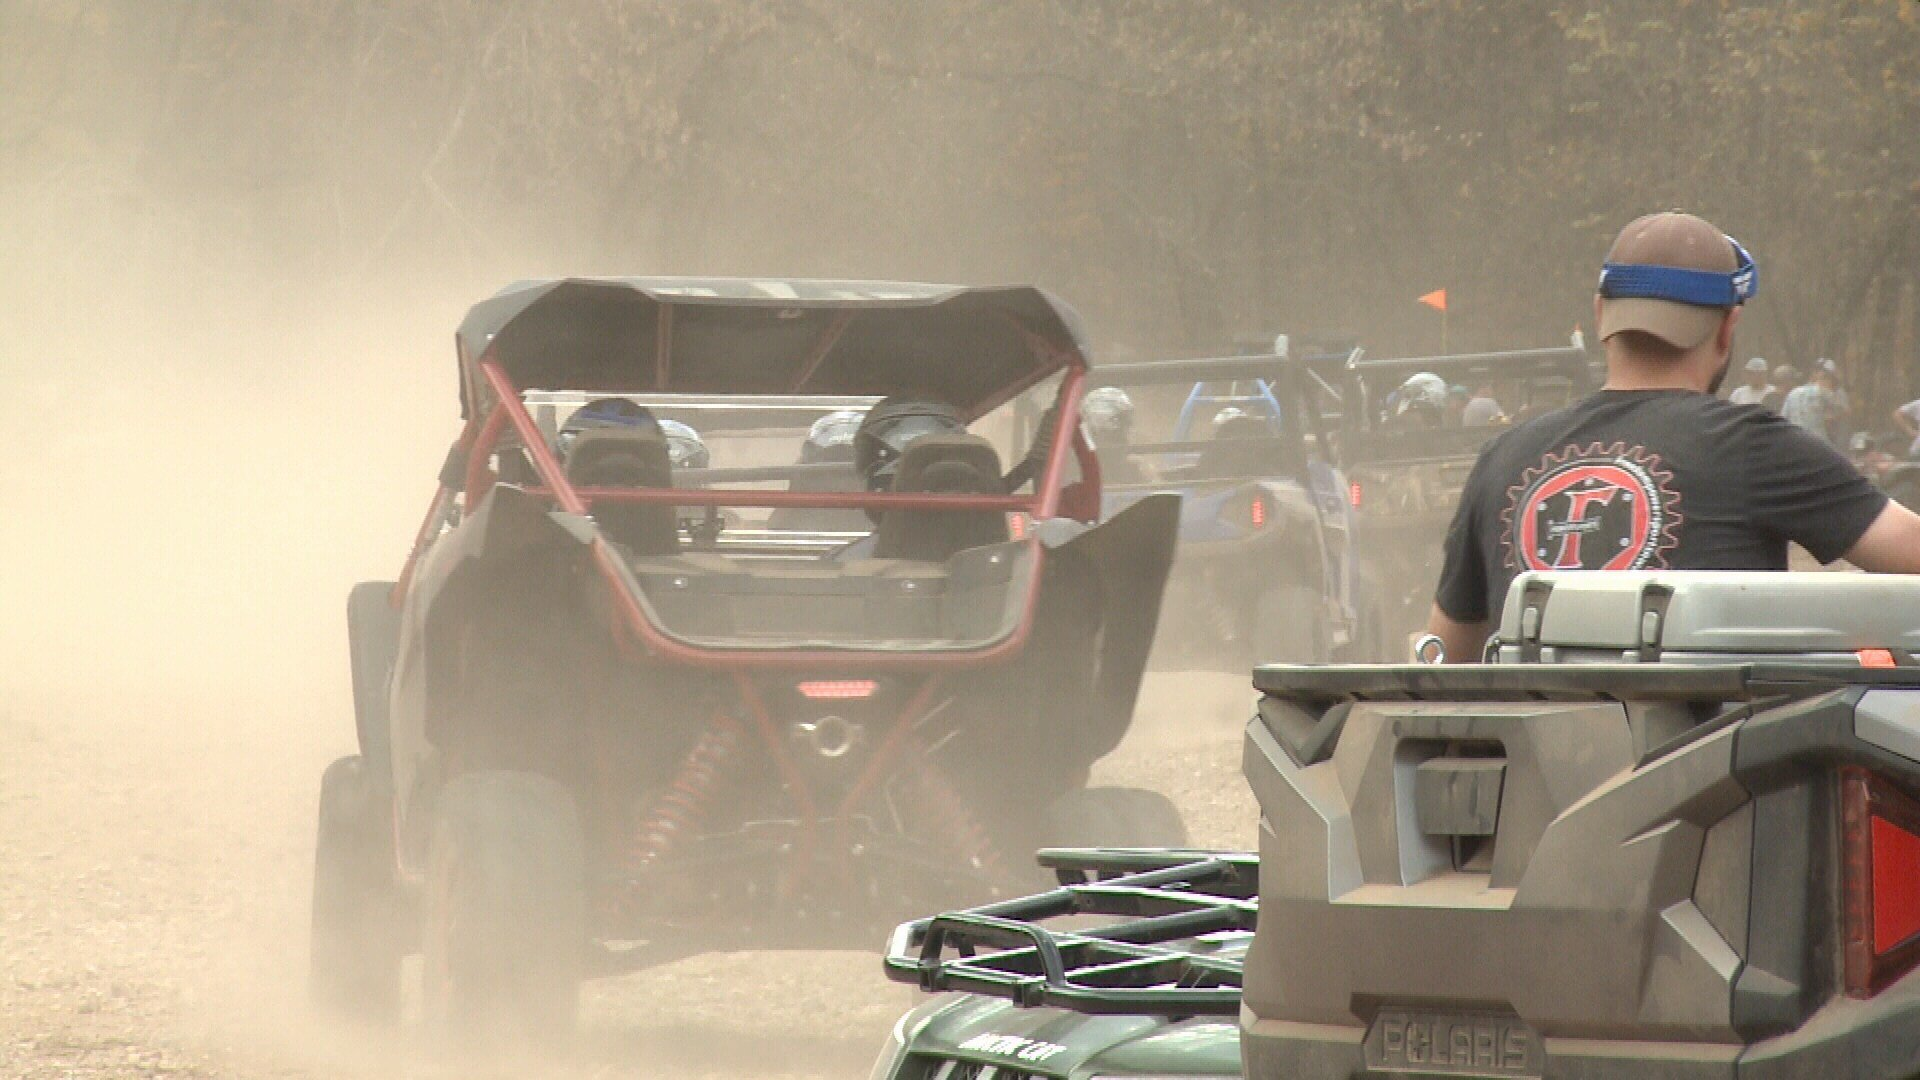 People test drive off-road vehicles on a Rush Springs Ranch trail.